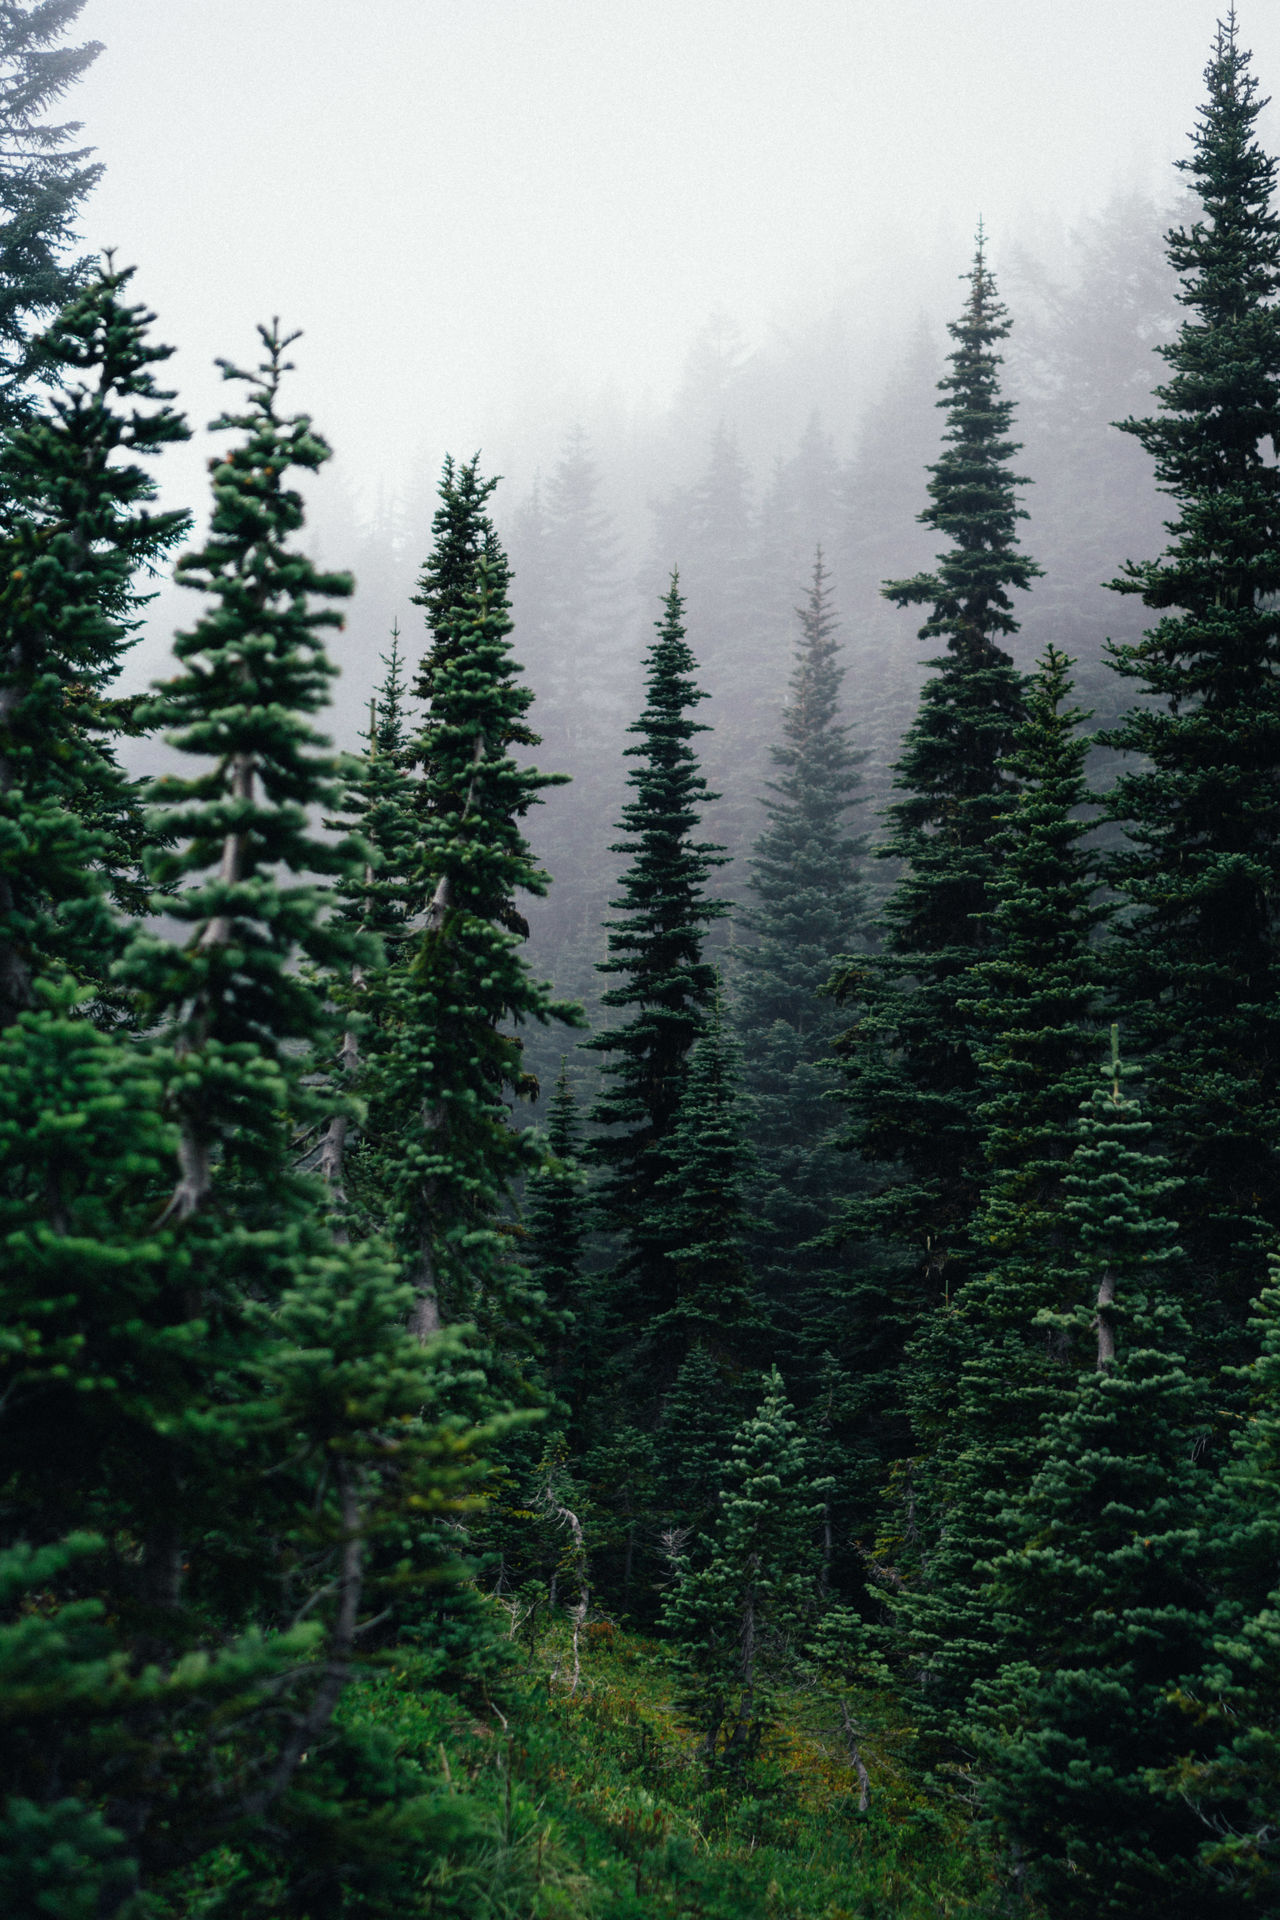 Beauty In Nature Coniferous Tree Day Fog Forest Growth Landscape Nature No People Outdoors Pine Tree Scenics Sky Tranquility Tree